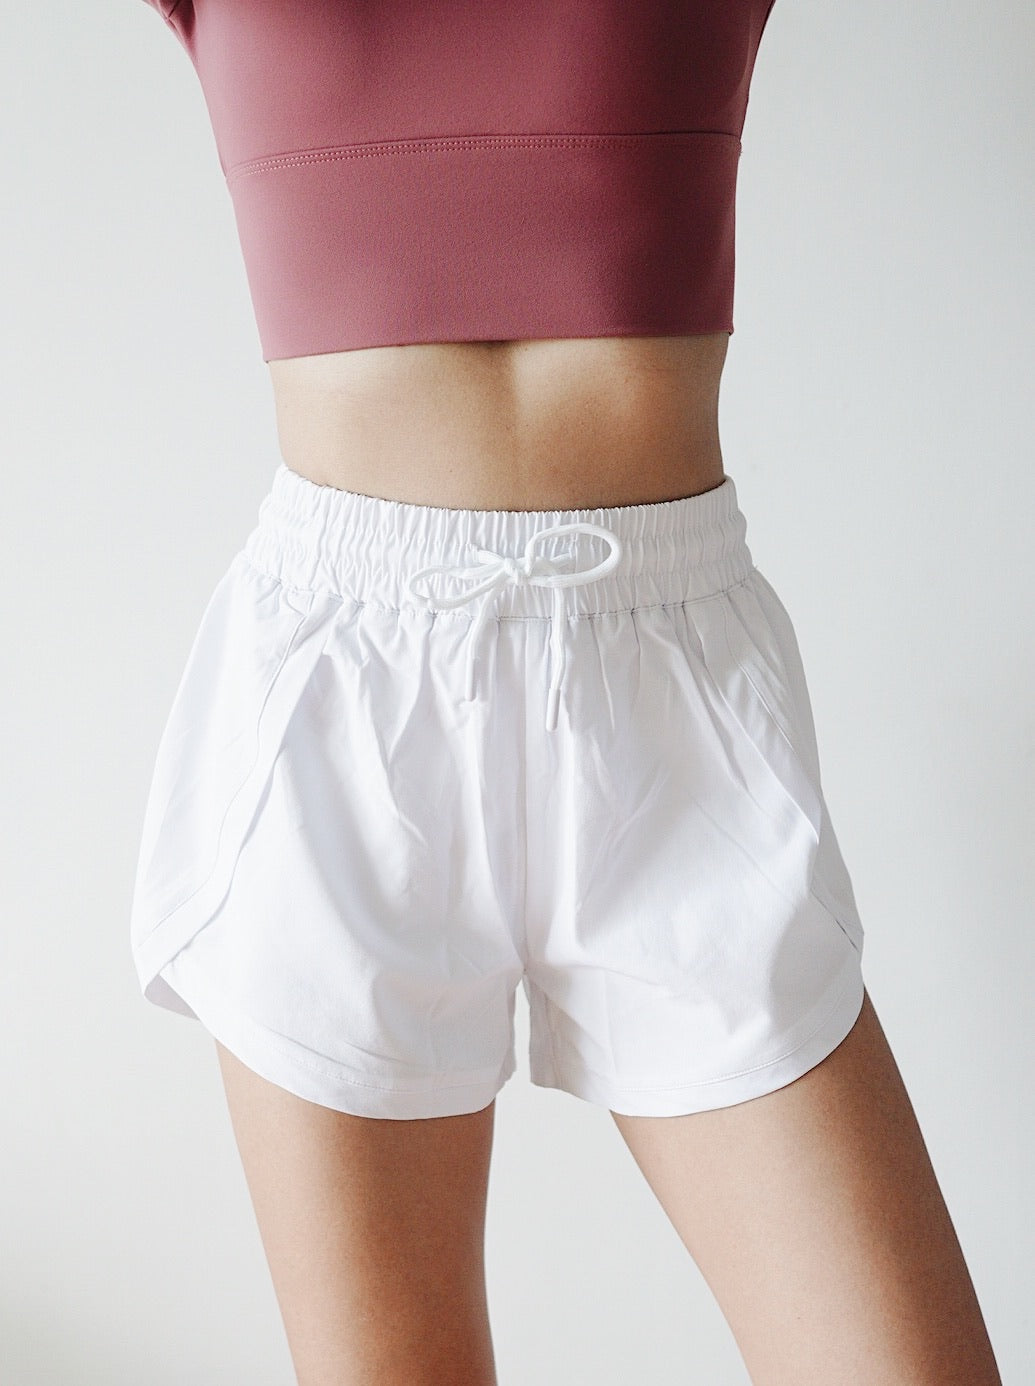 Chic Running Shorts - White